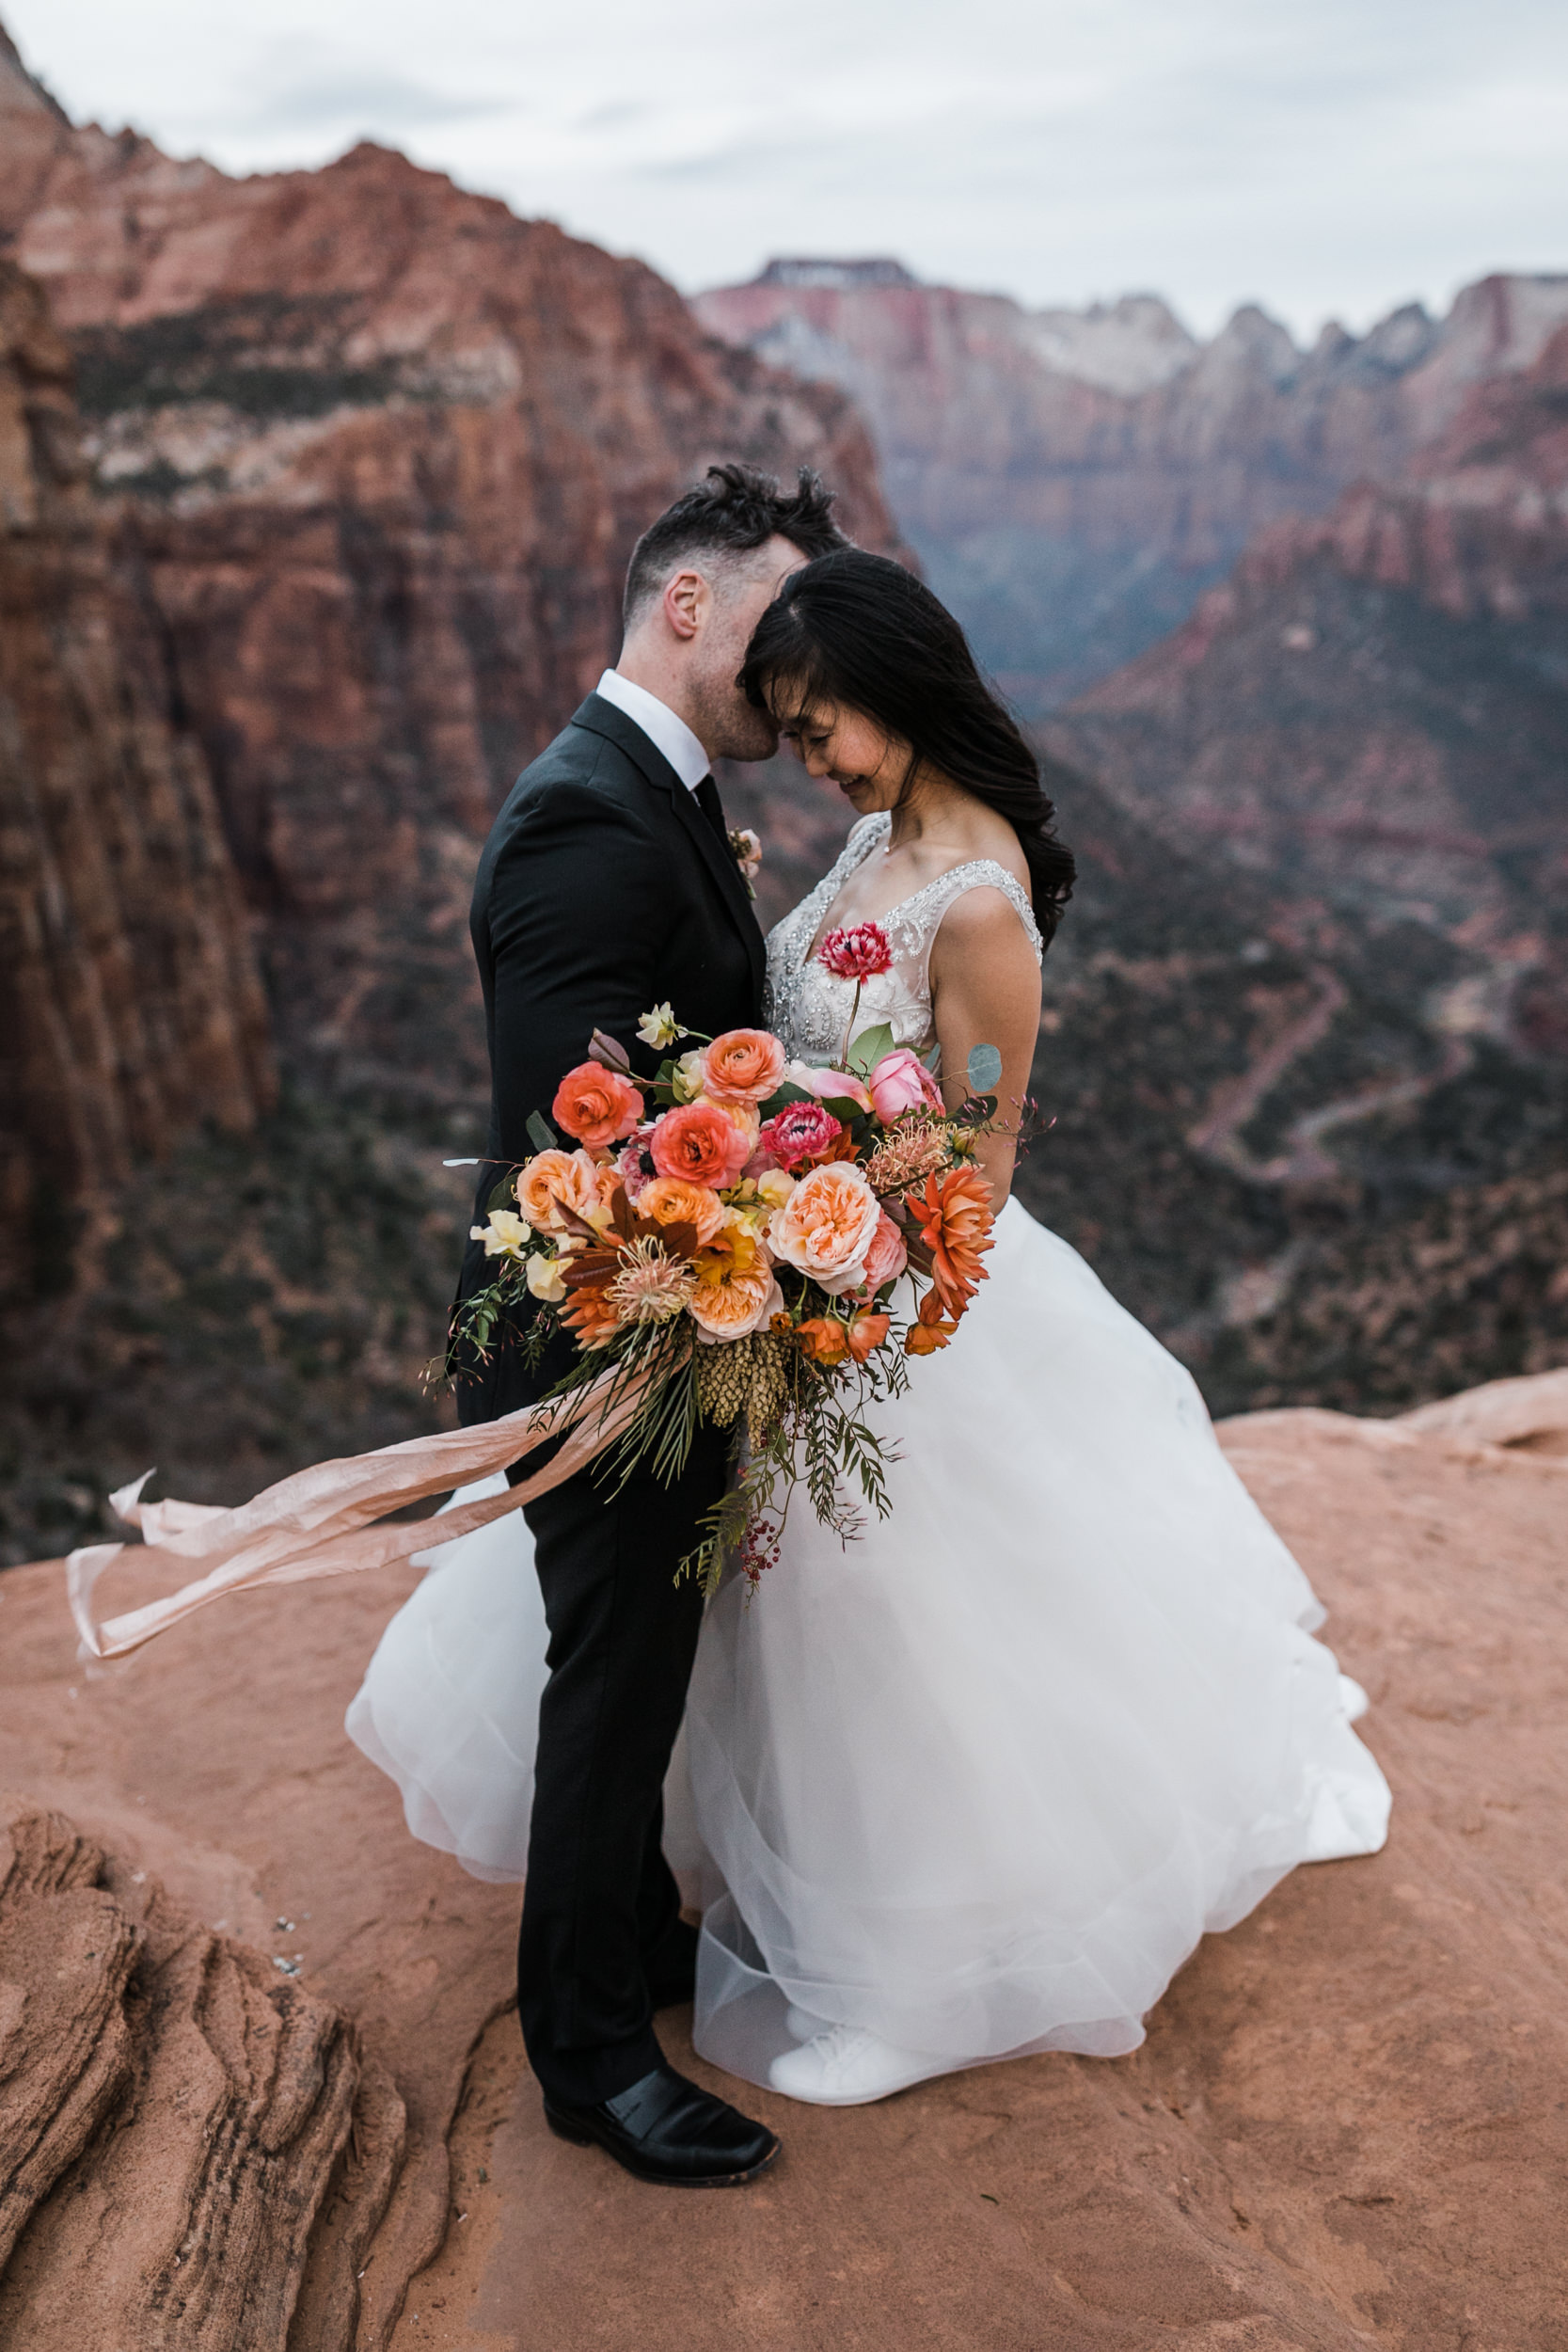 Wedding Photography in Zion National Park